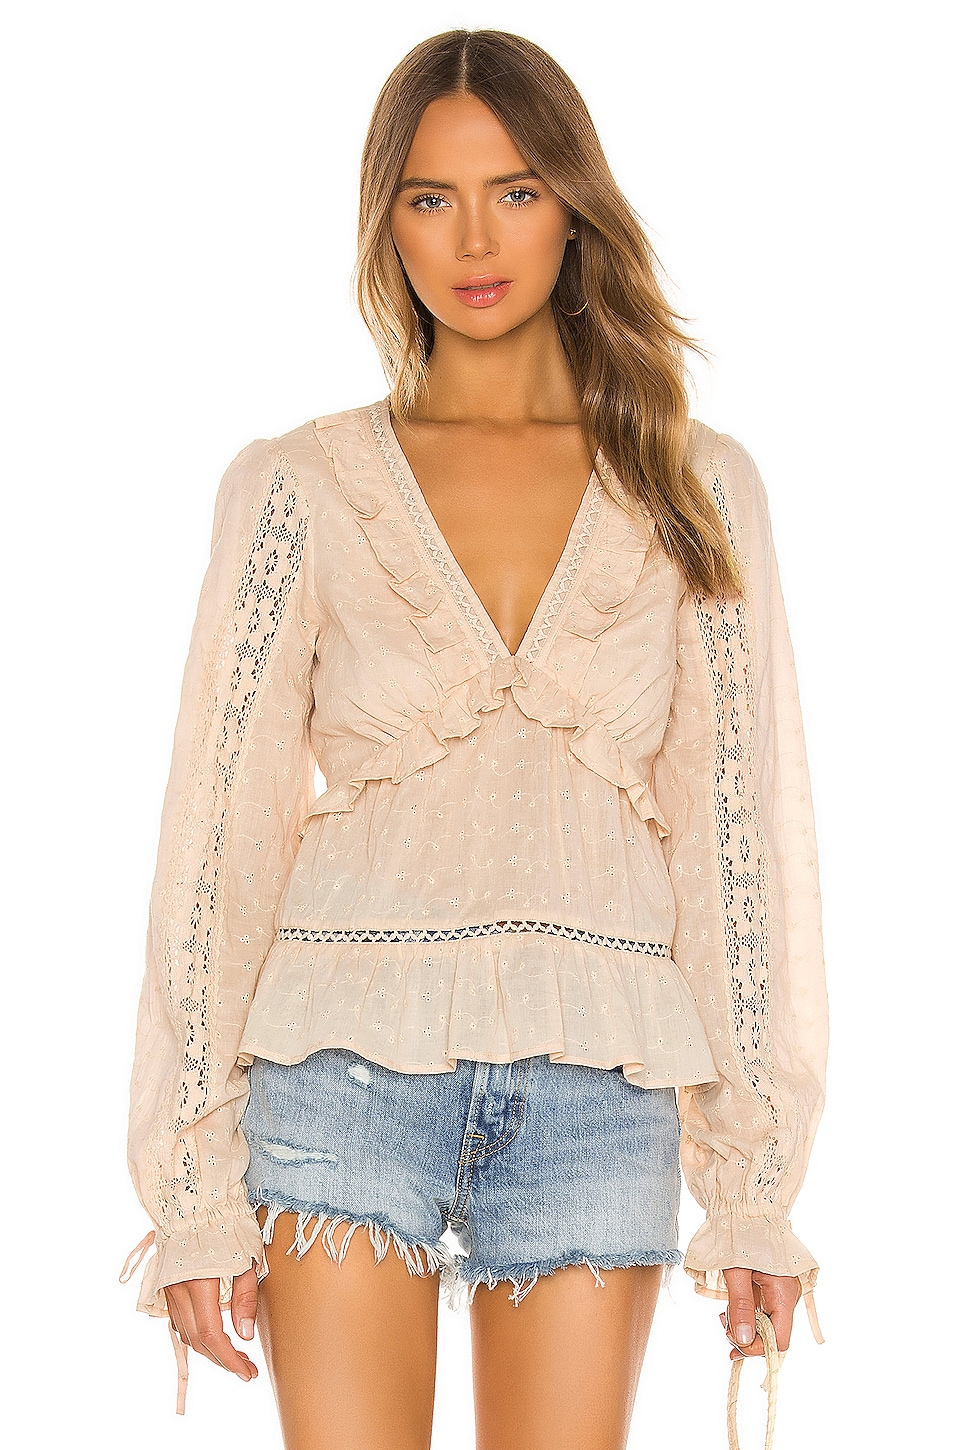 Tularosa Frankie Top in Neutral